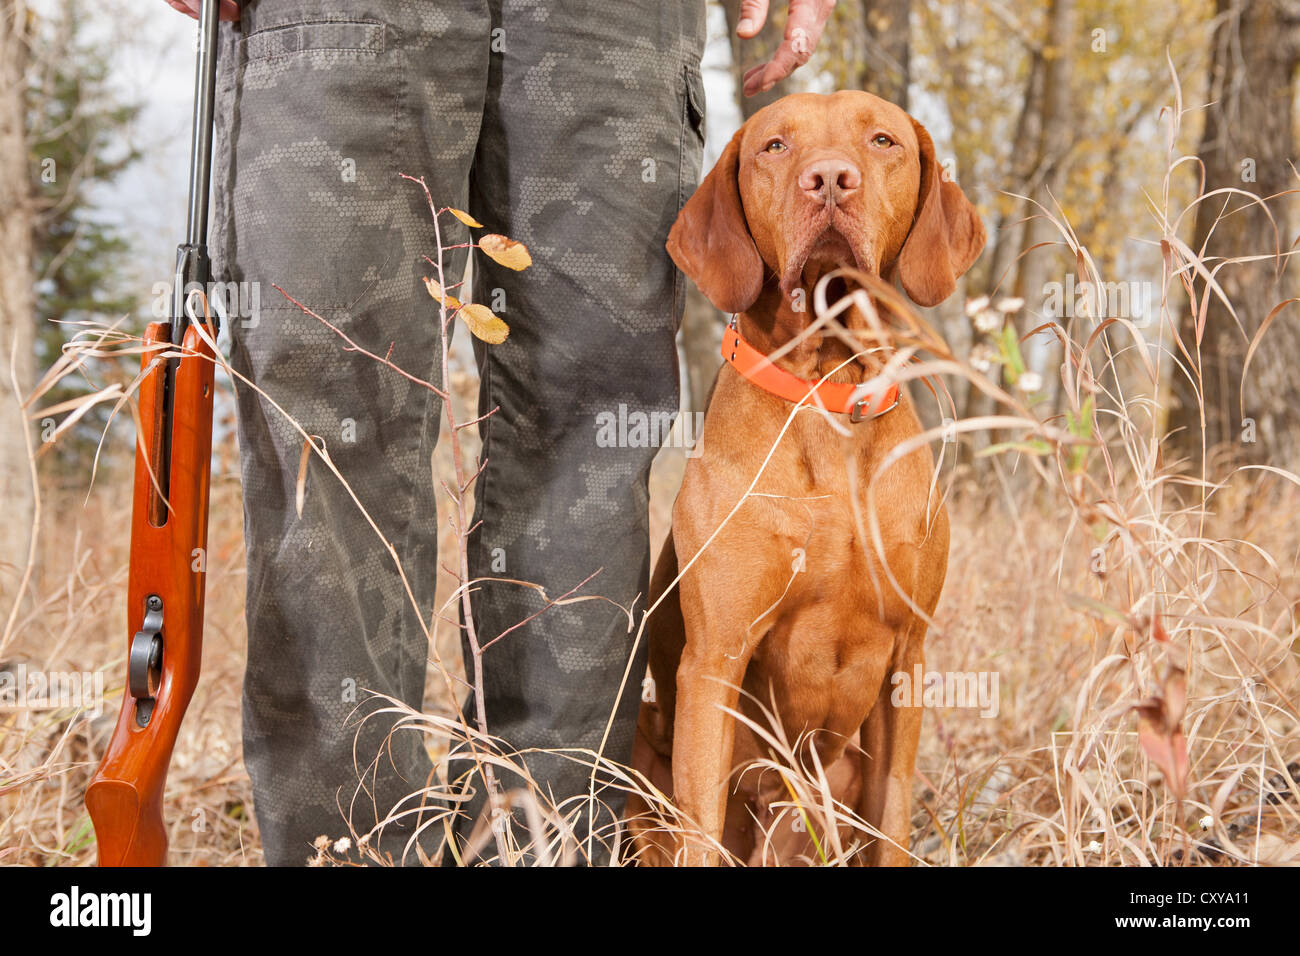 vizsla hunting dog sitting at heel outdoors - Stock Image